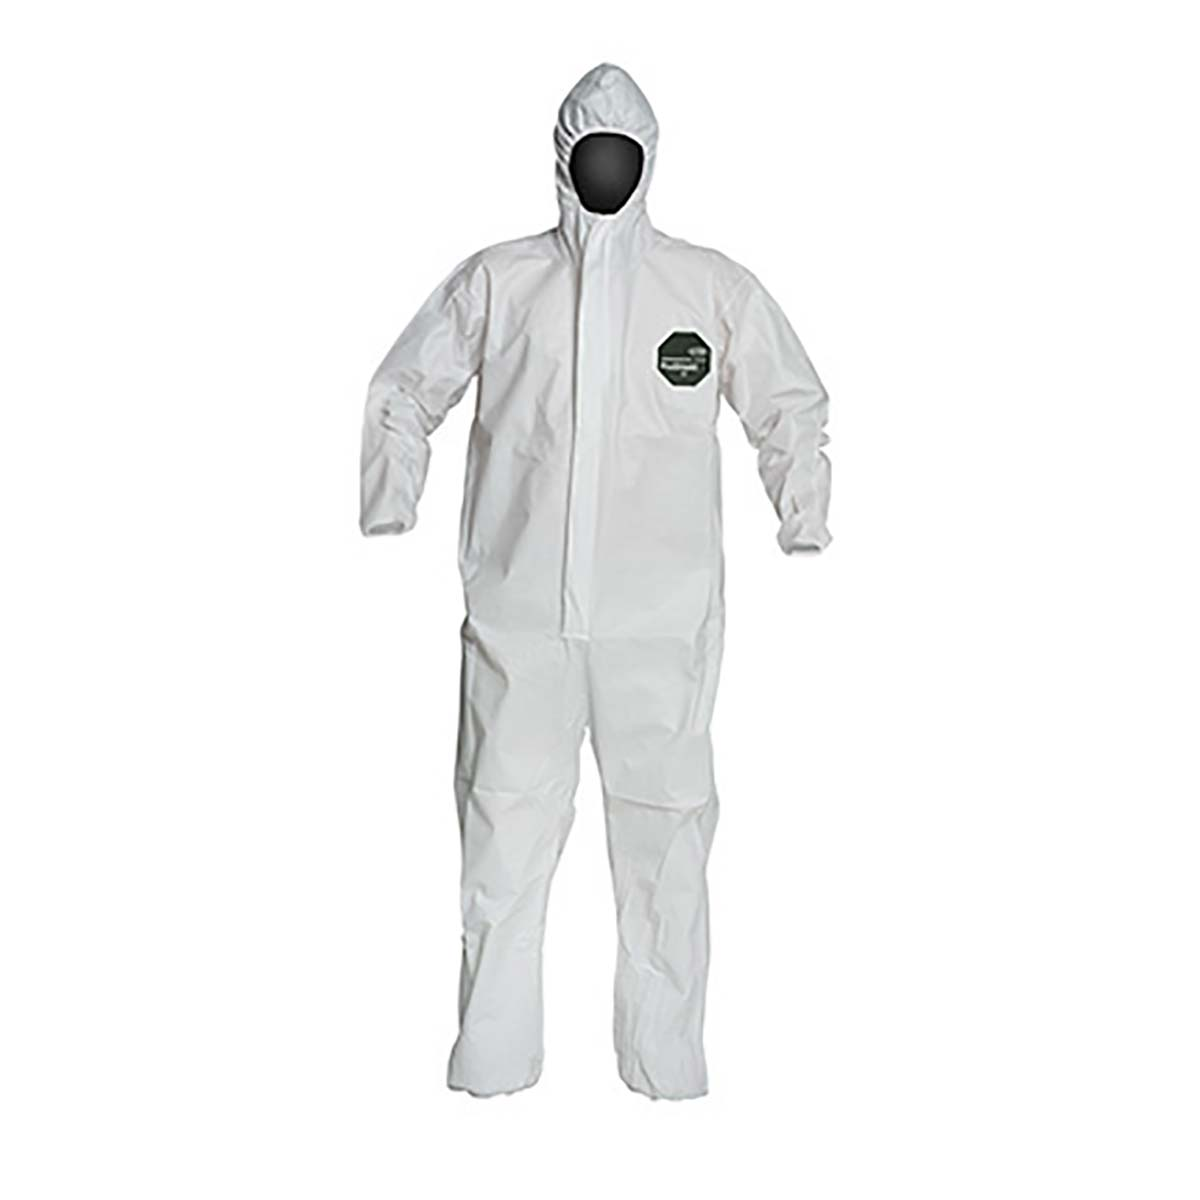 PROSHIELD® 50, COVERALL, ZIPPER FRONT, HOOD, ELASTIC WRIST AND ANKLE, STORMFLAP